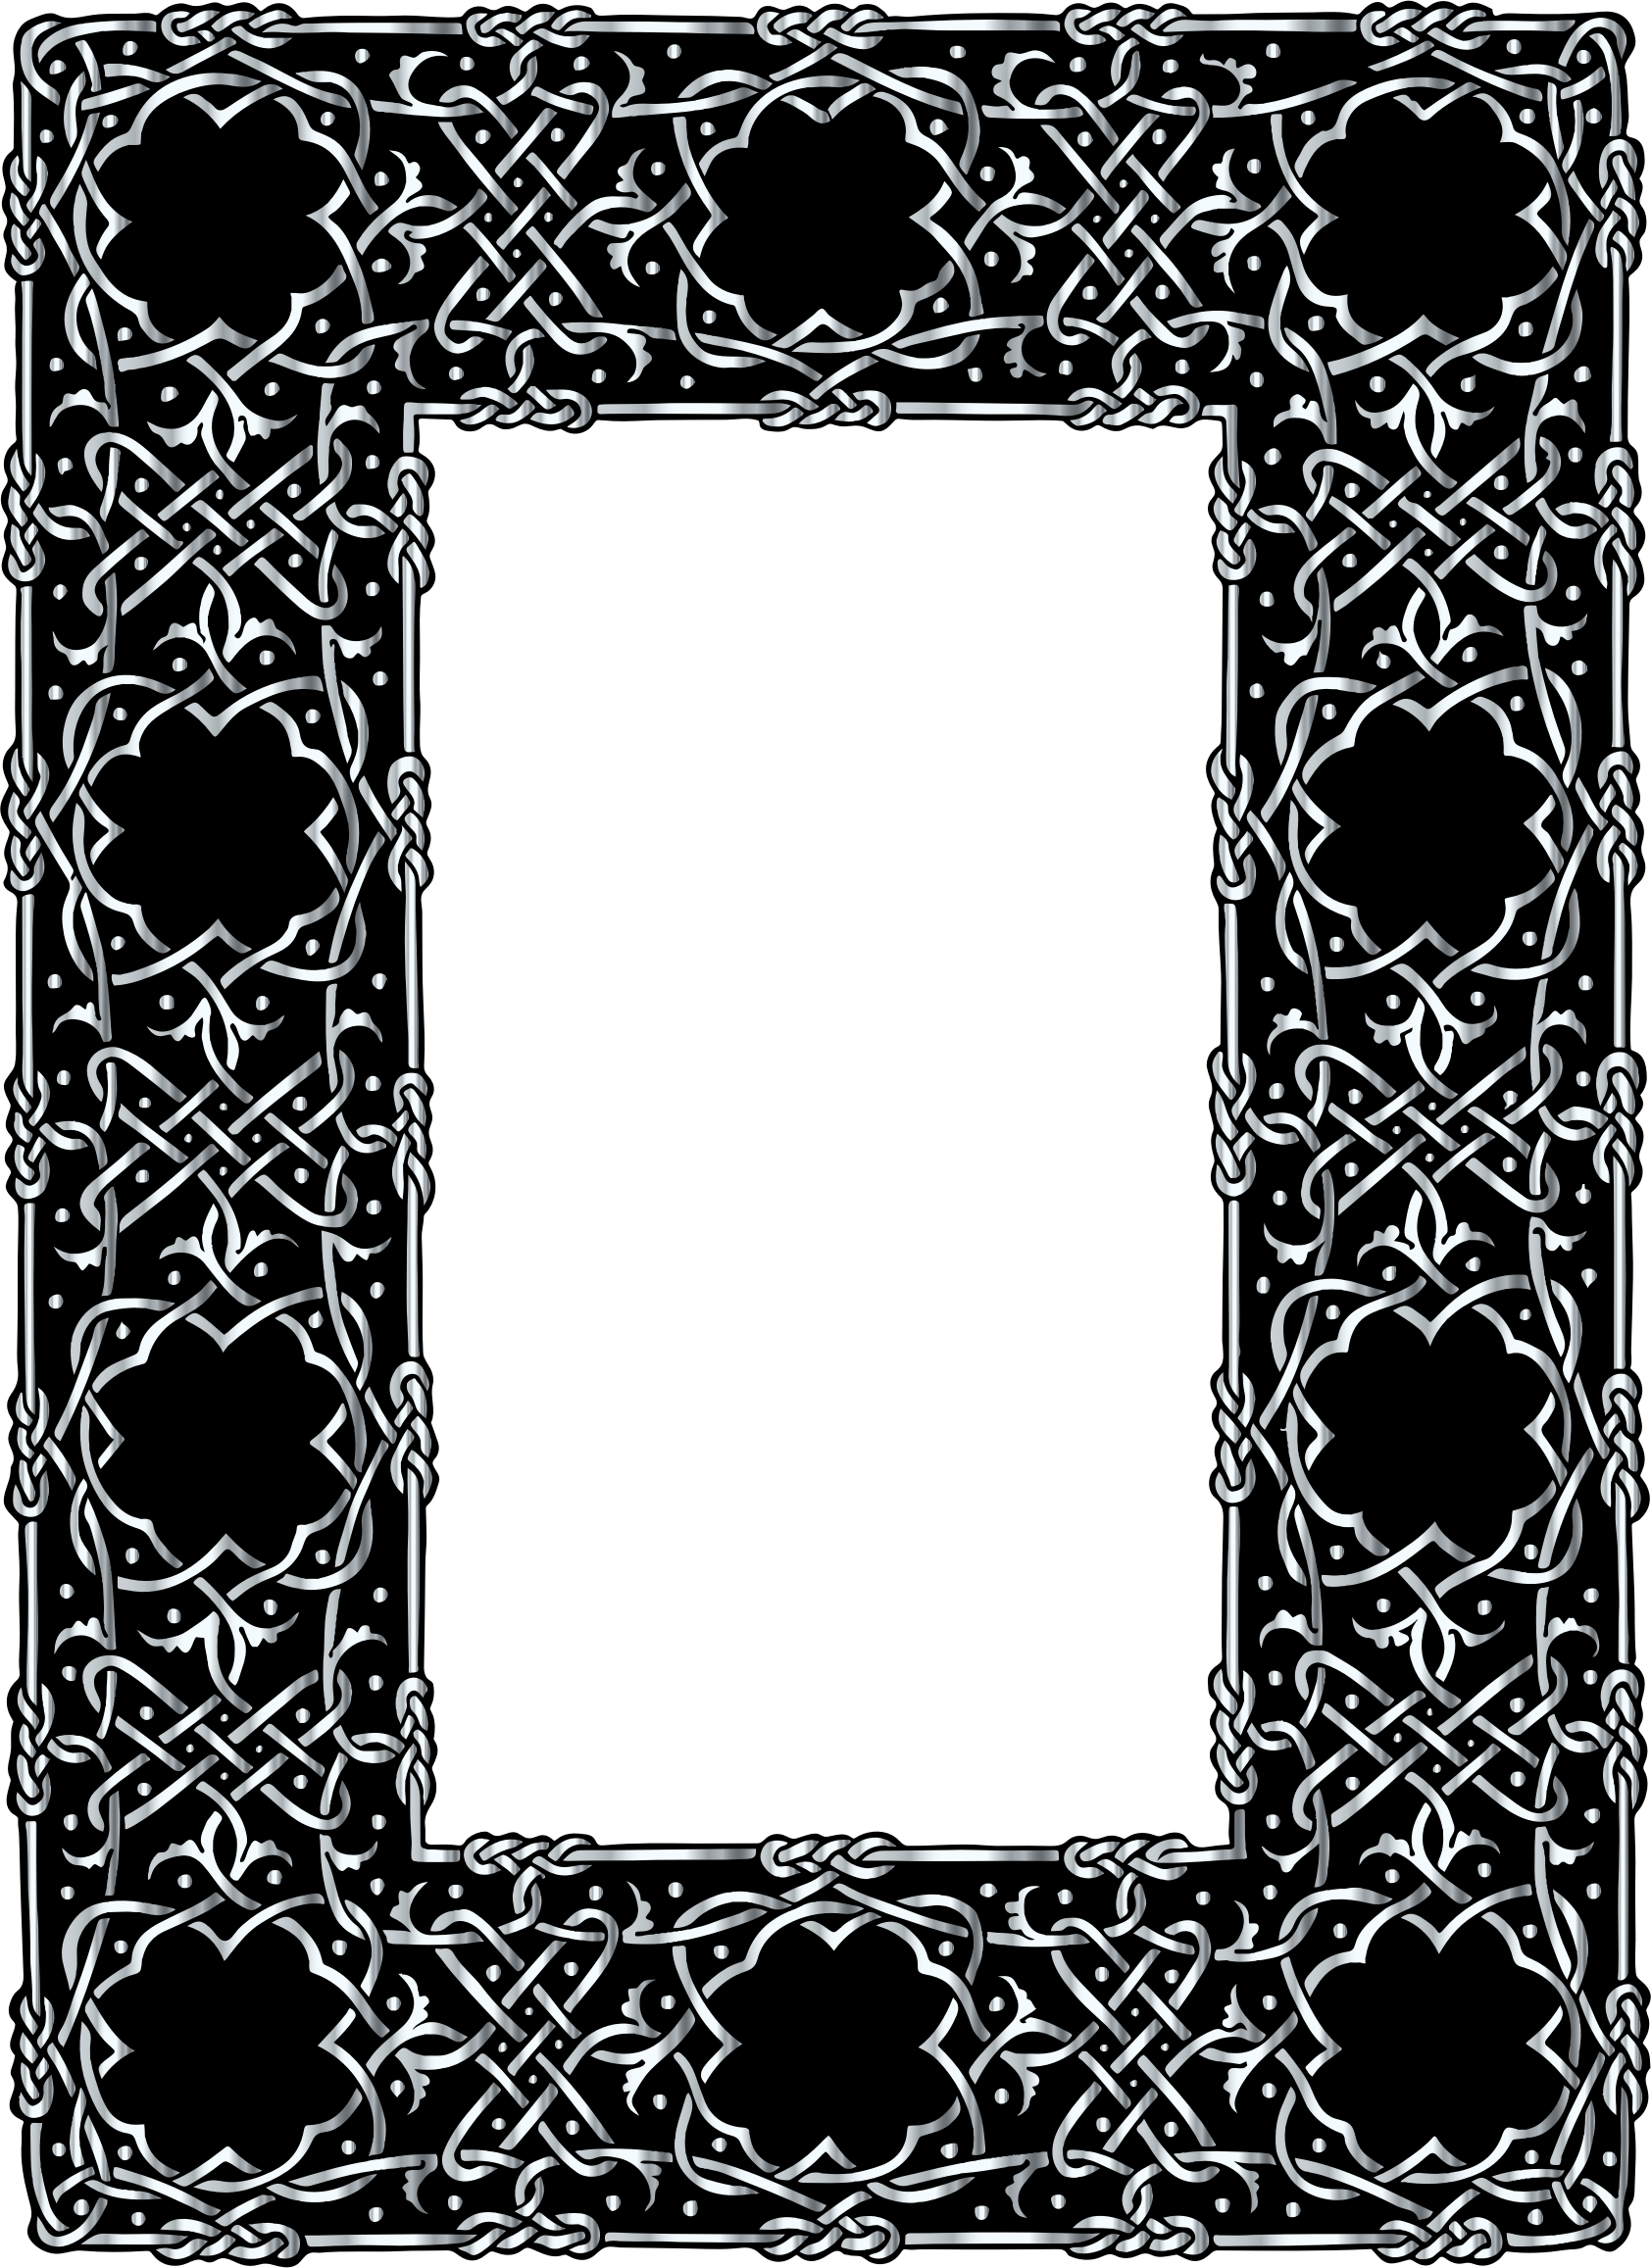 Frame clipart silver, Frame silver Transparent FREE for.